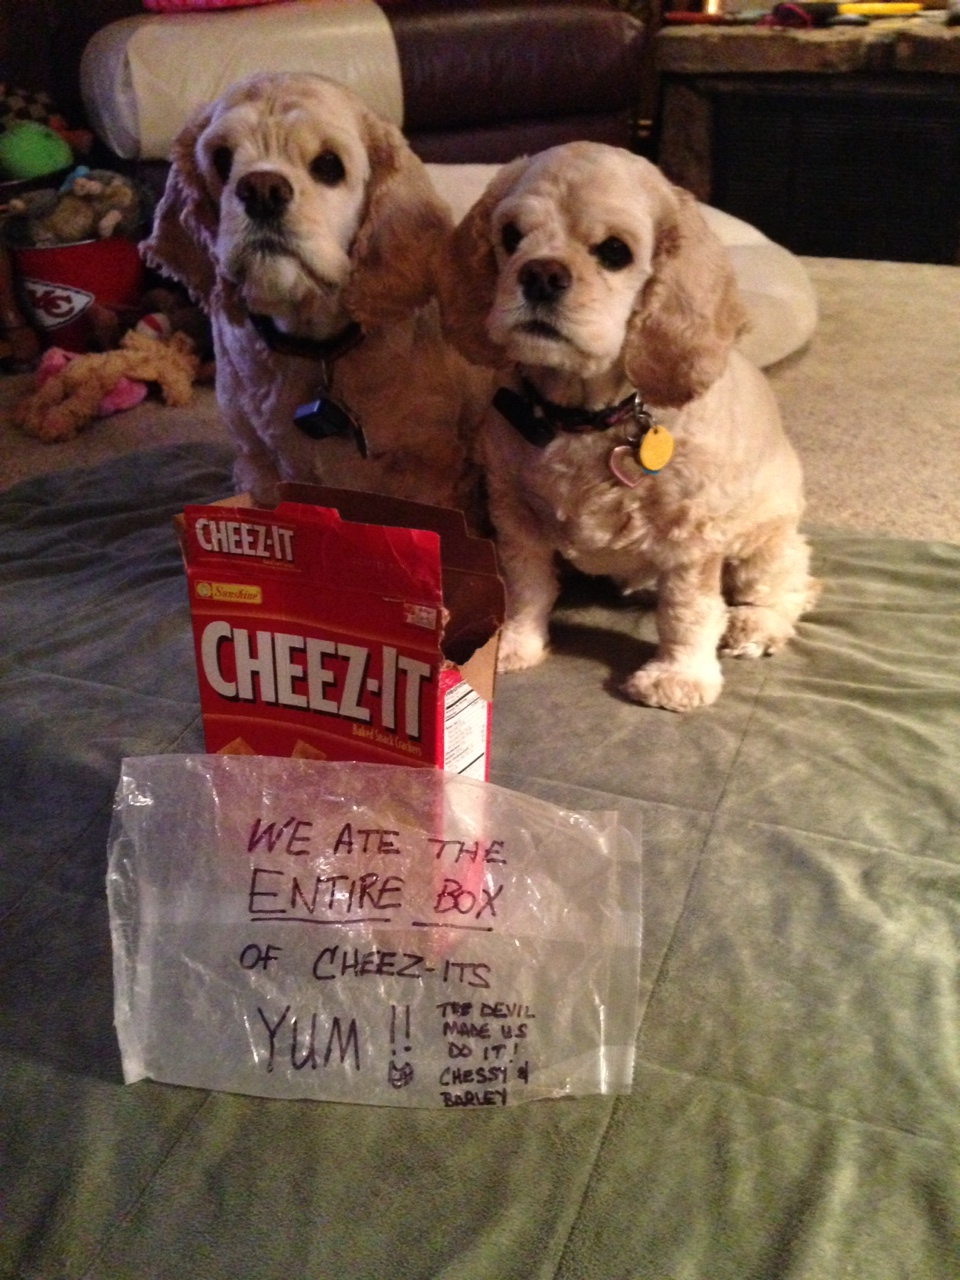 CHEEZ-ITS YUM, dried fruit, by far, most dogs will gladly help themselves to a Cheez-It treat, | Doggie ...